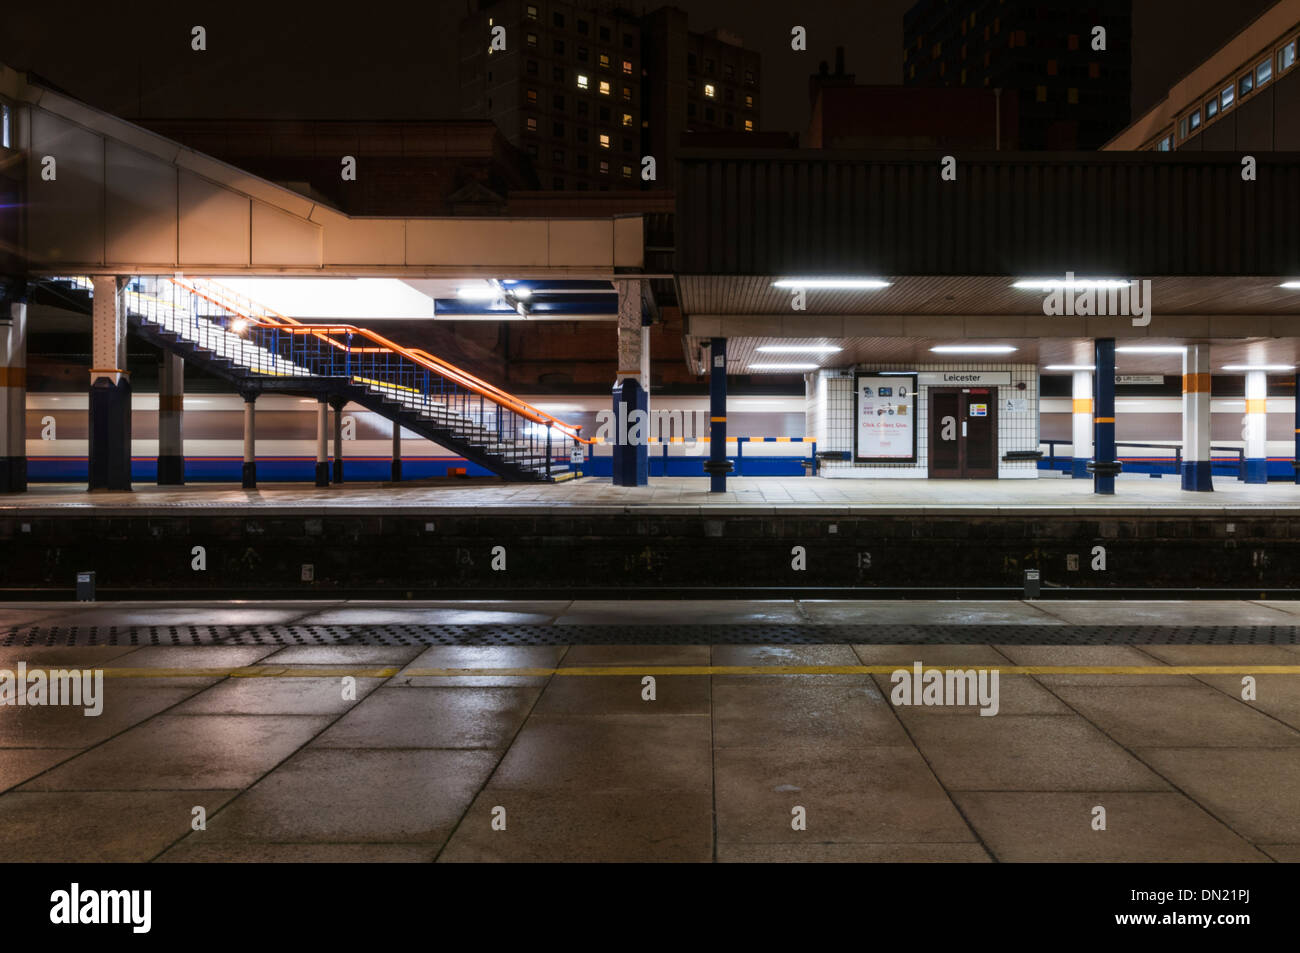 Long exposure of an East Midlands Trains passenger service passing through Leicester station at night. - Stock Image